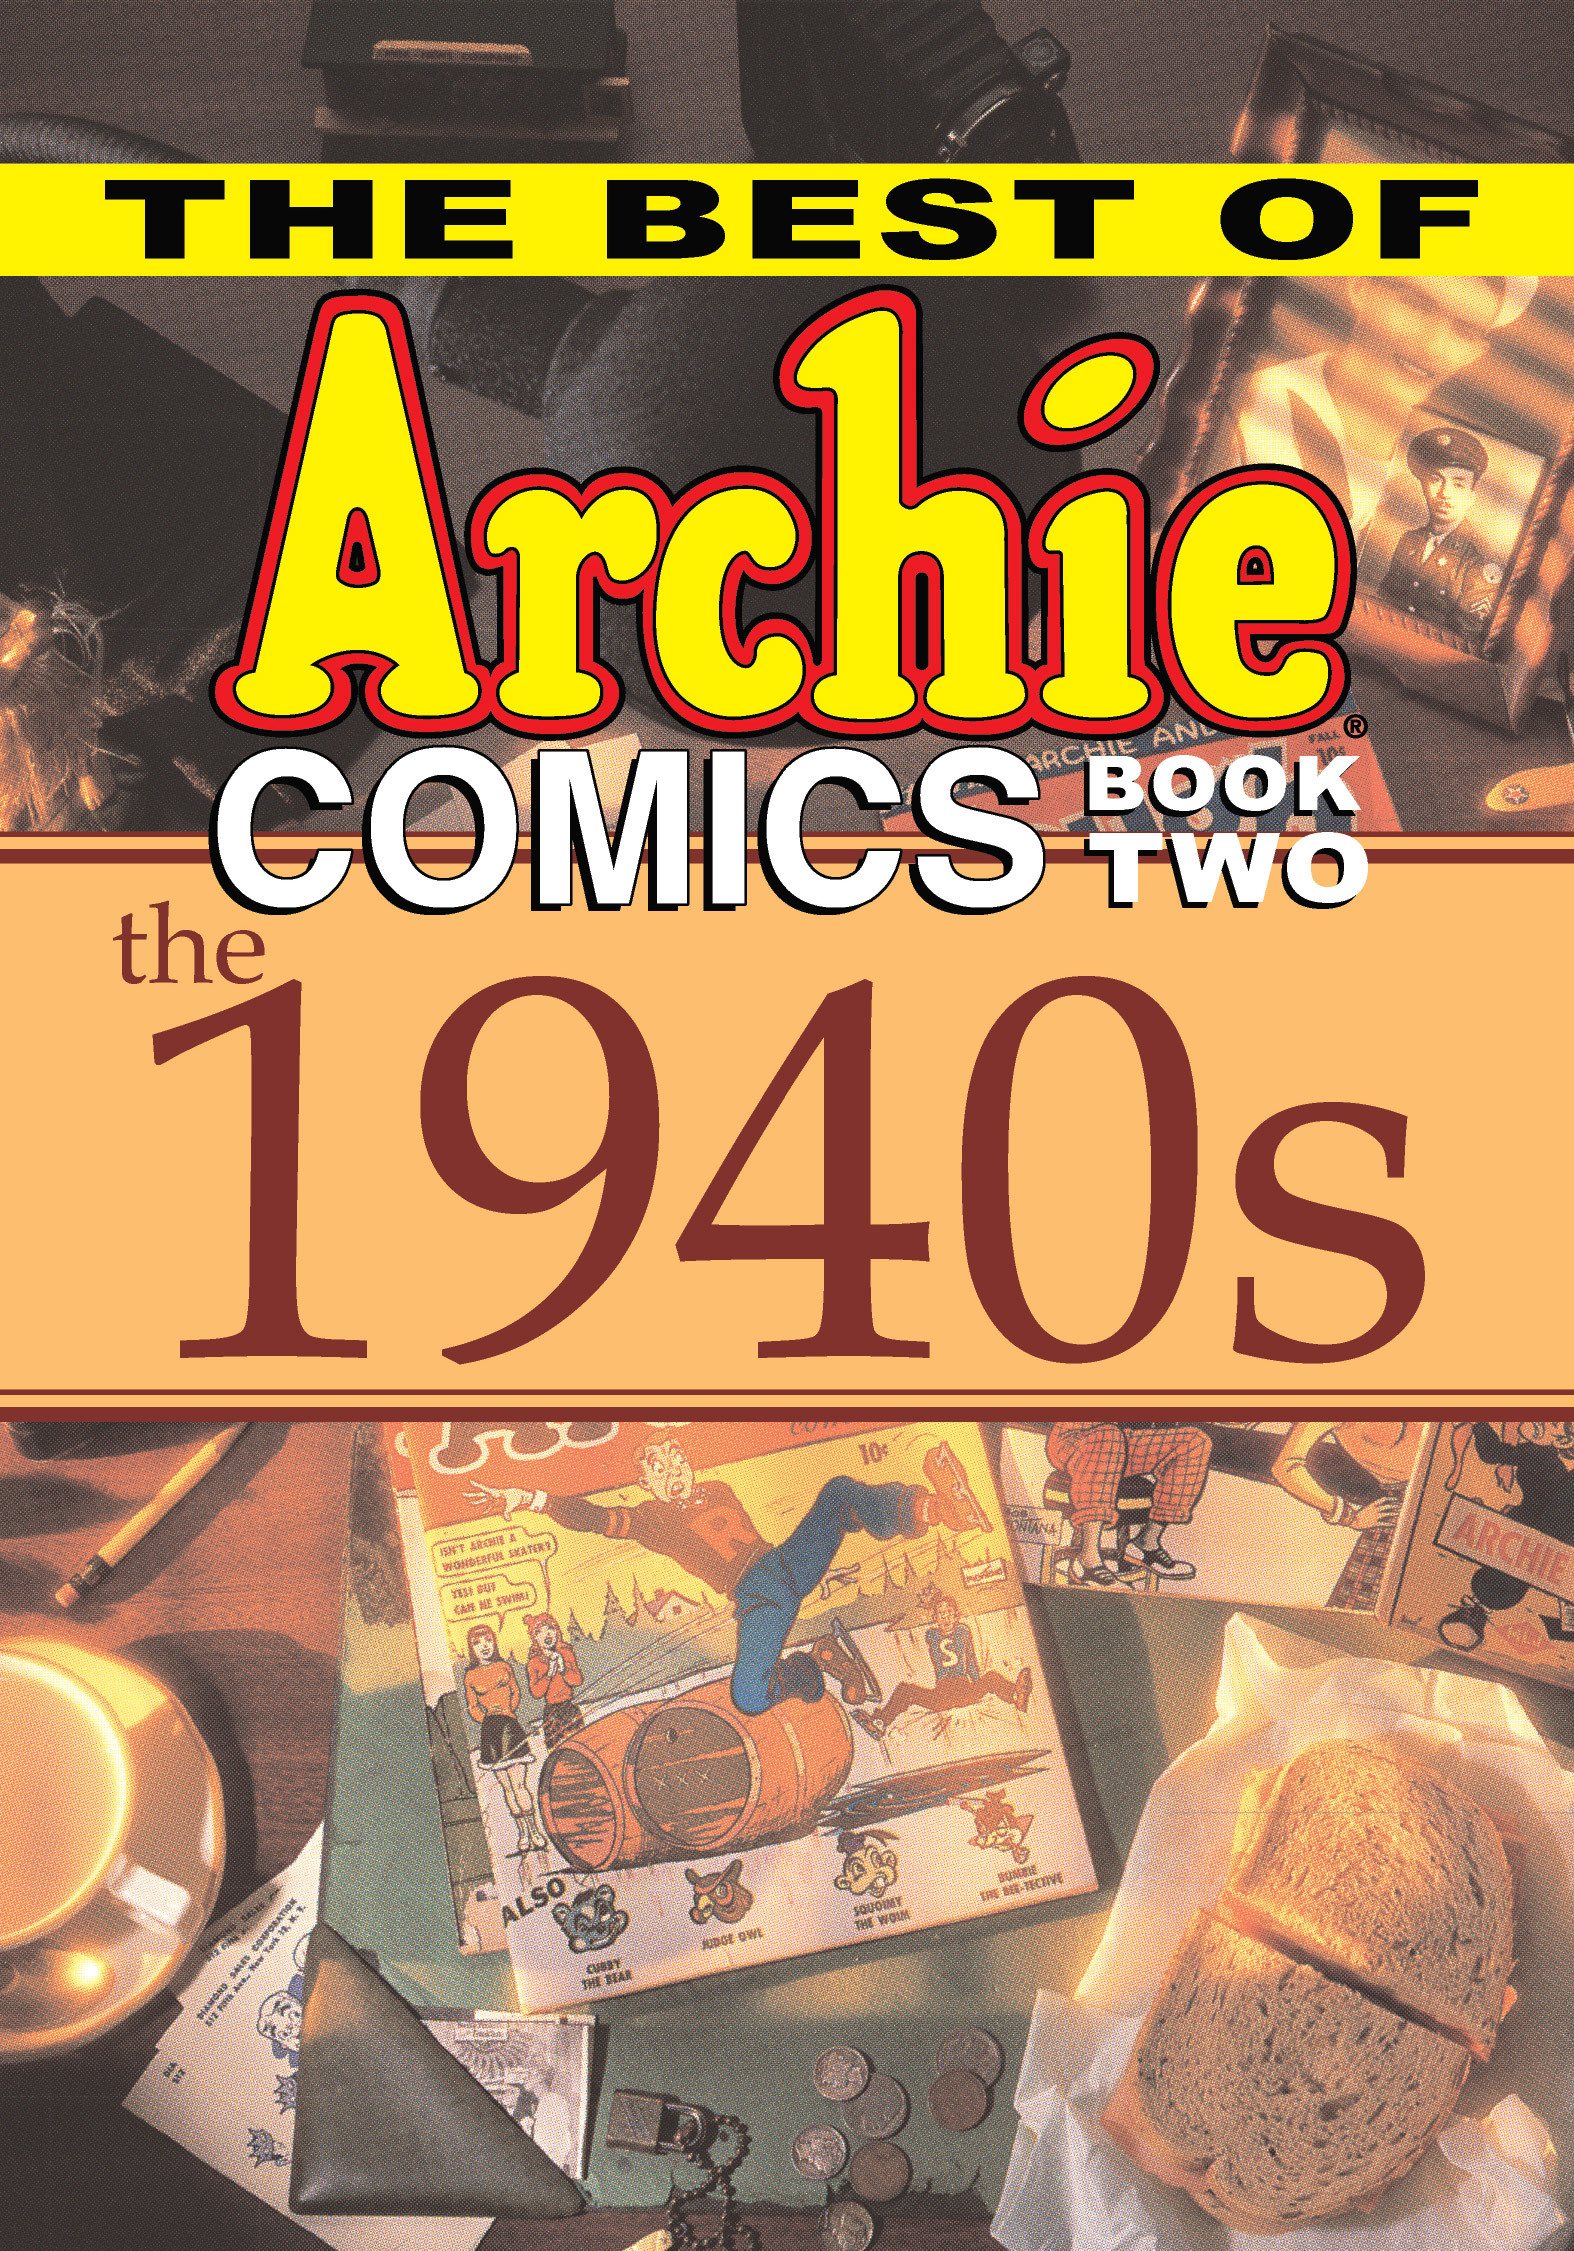 Read online The Best of Archie Comics comic -  Issue # TPB 2 (Part 1) - 7